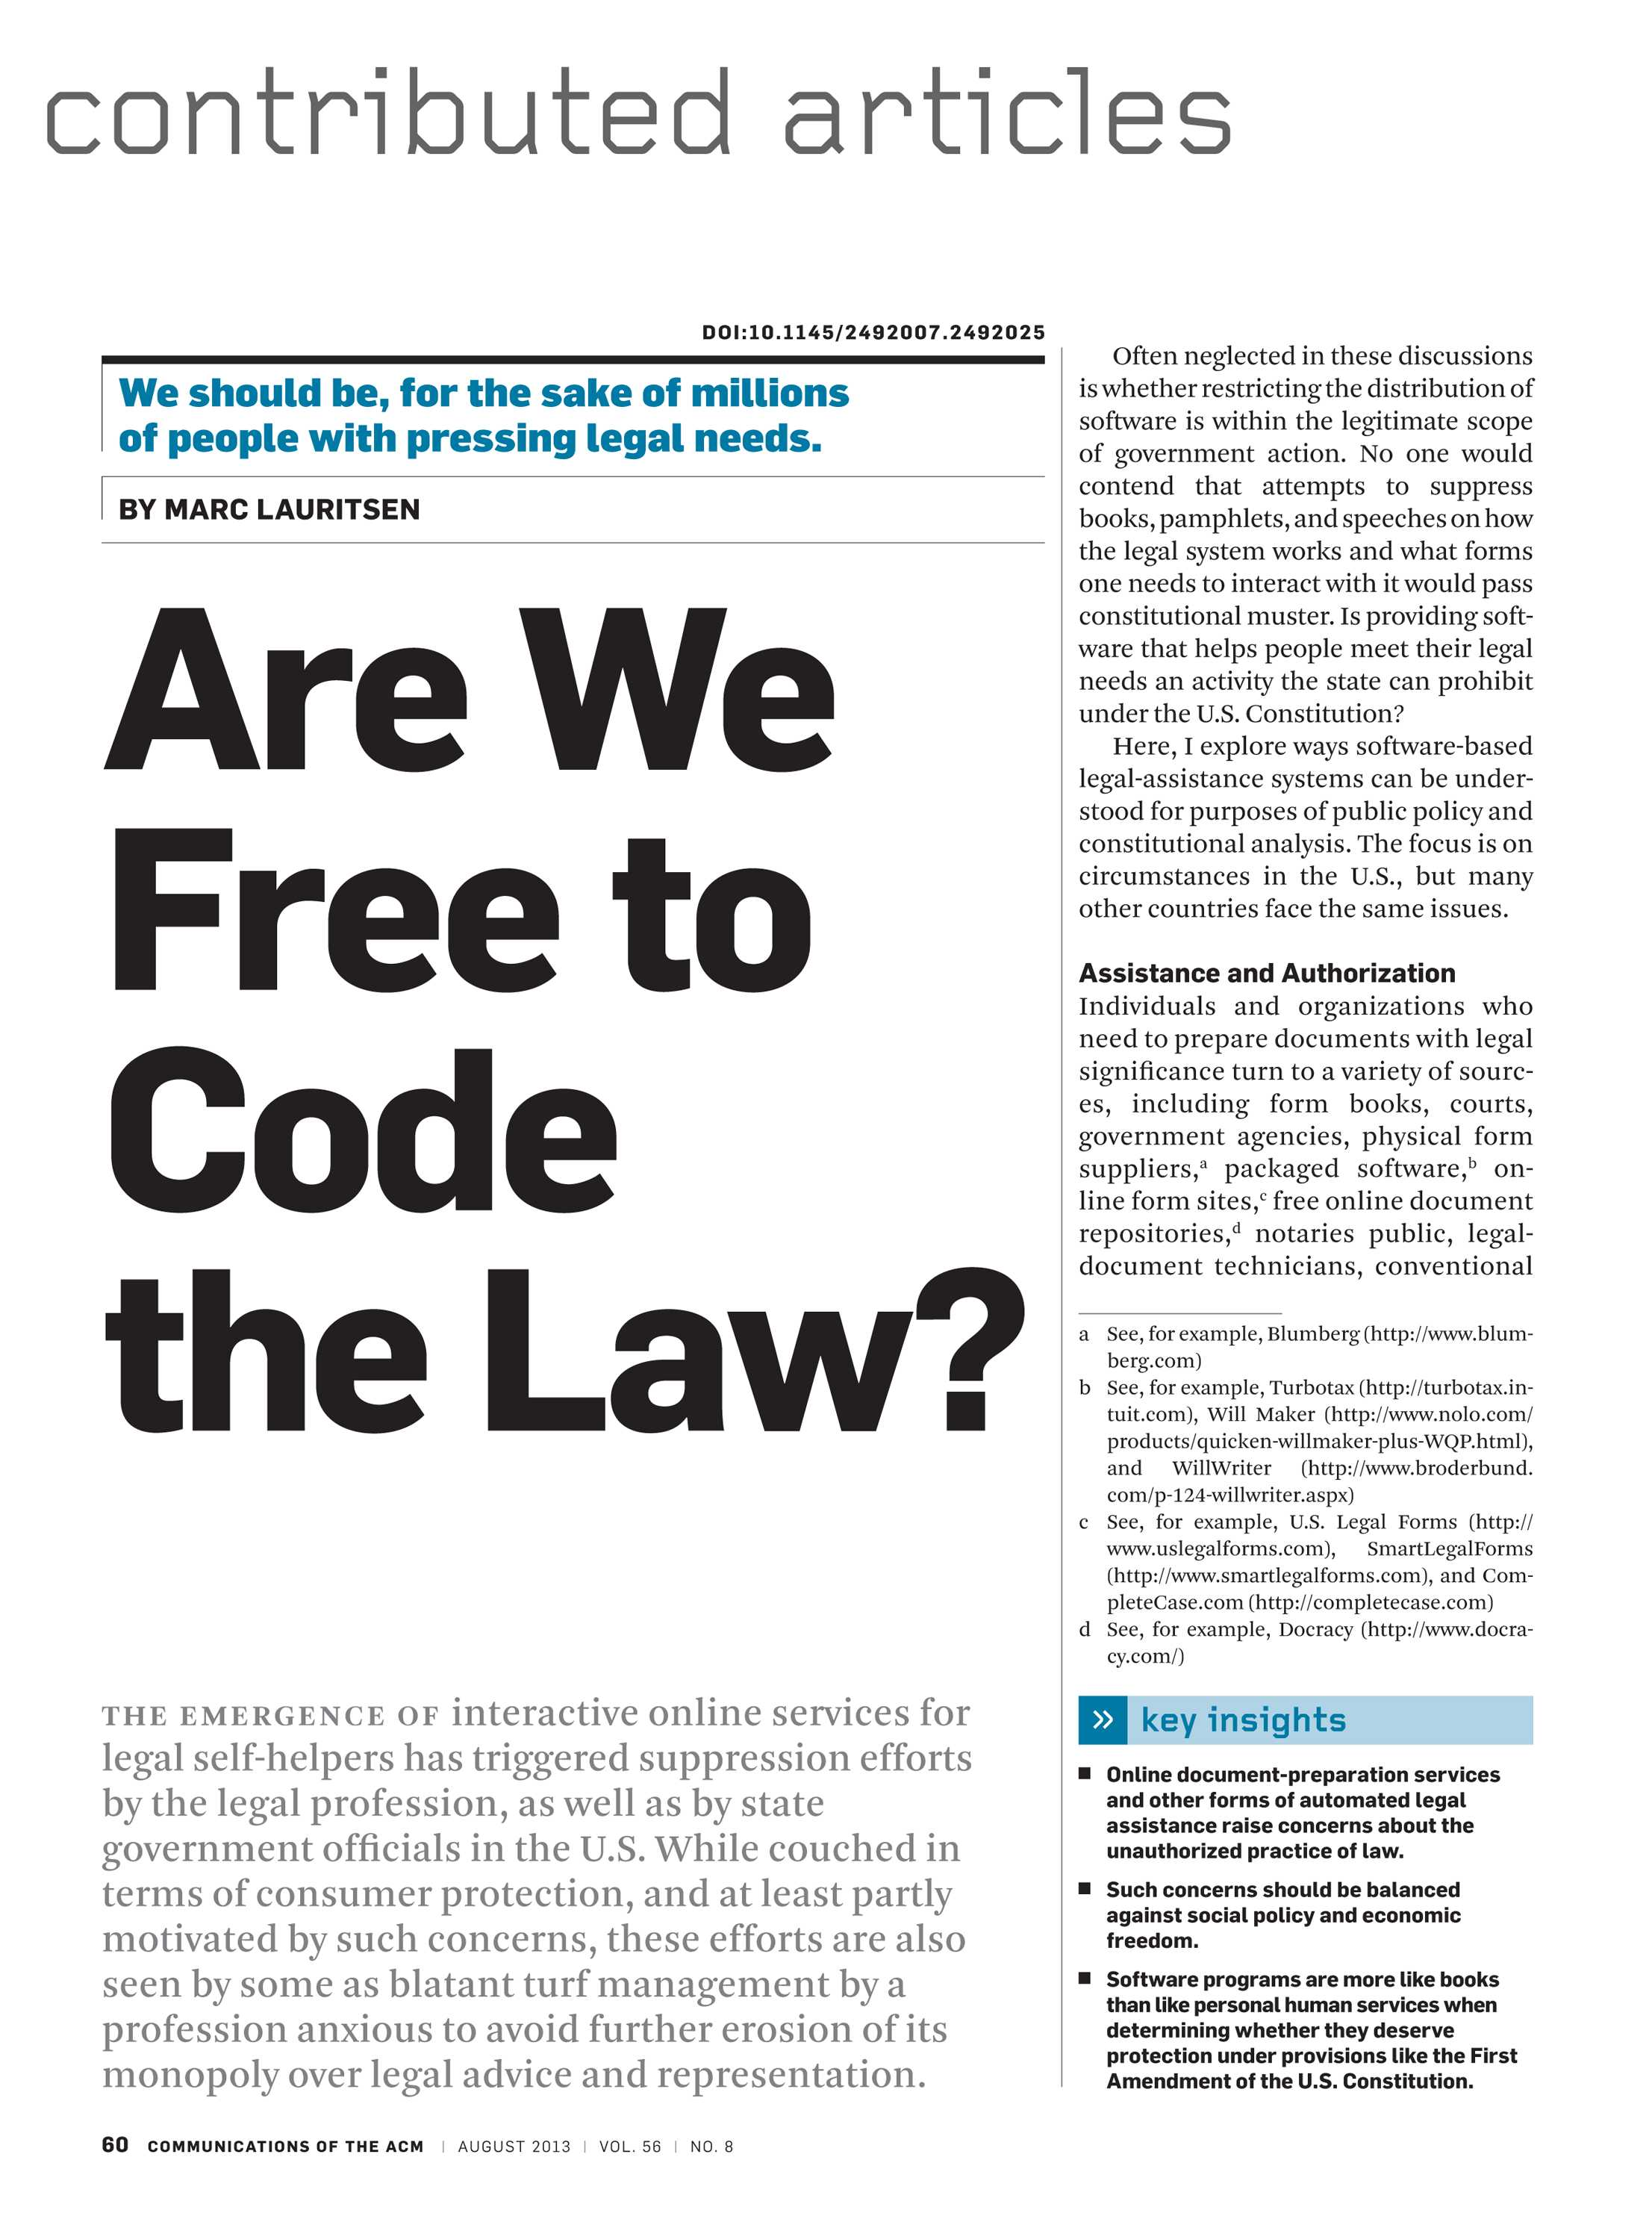 Communications of the ACM - August 2013 - page 60